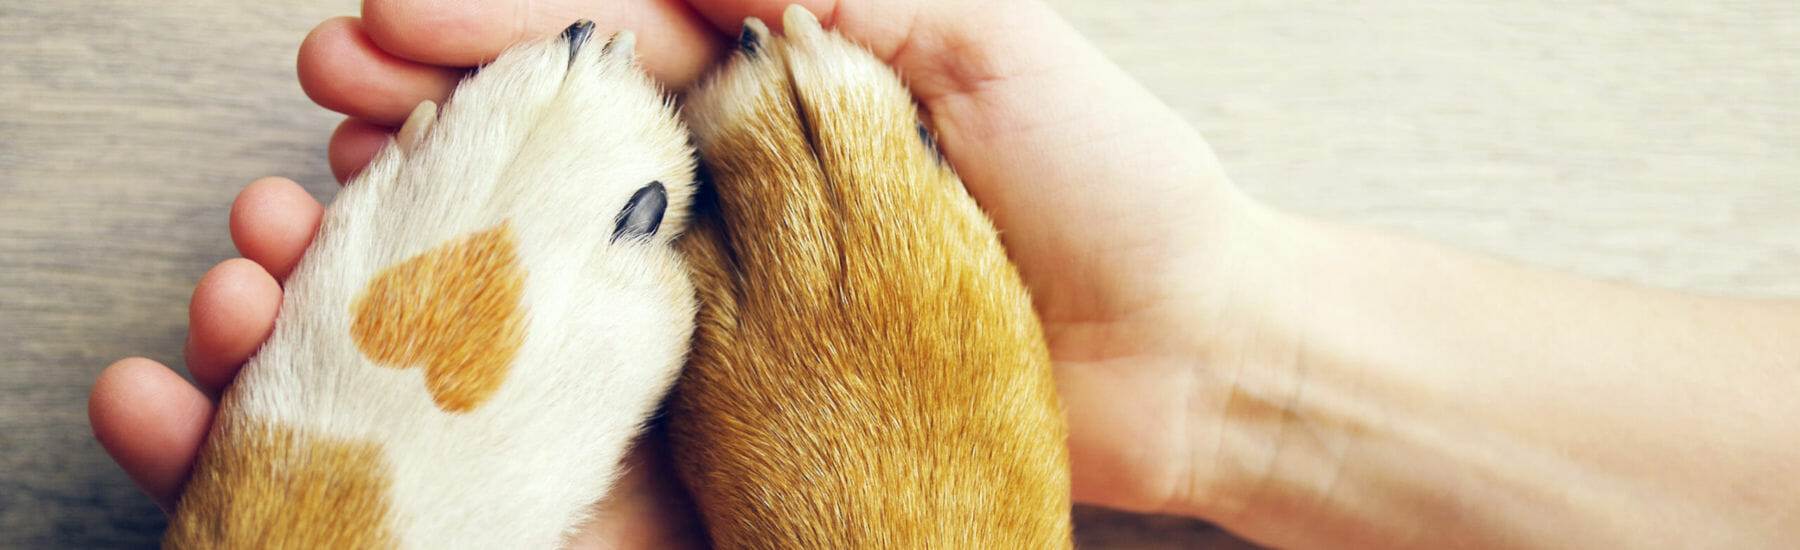 Human hands holding dog paws with a heart on the fur